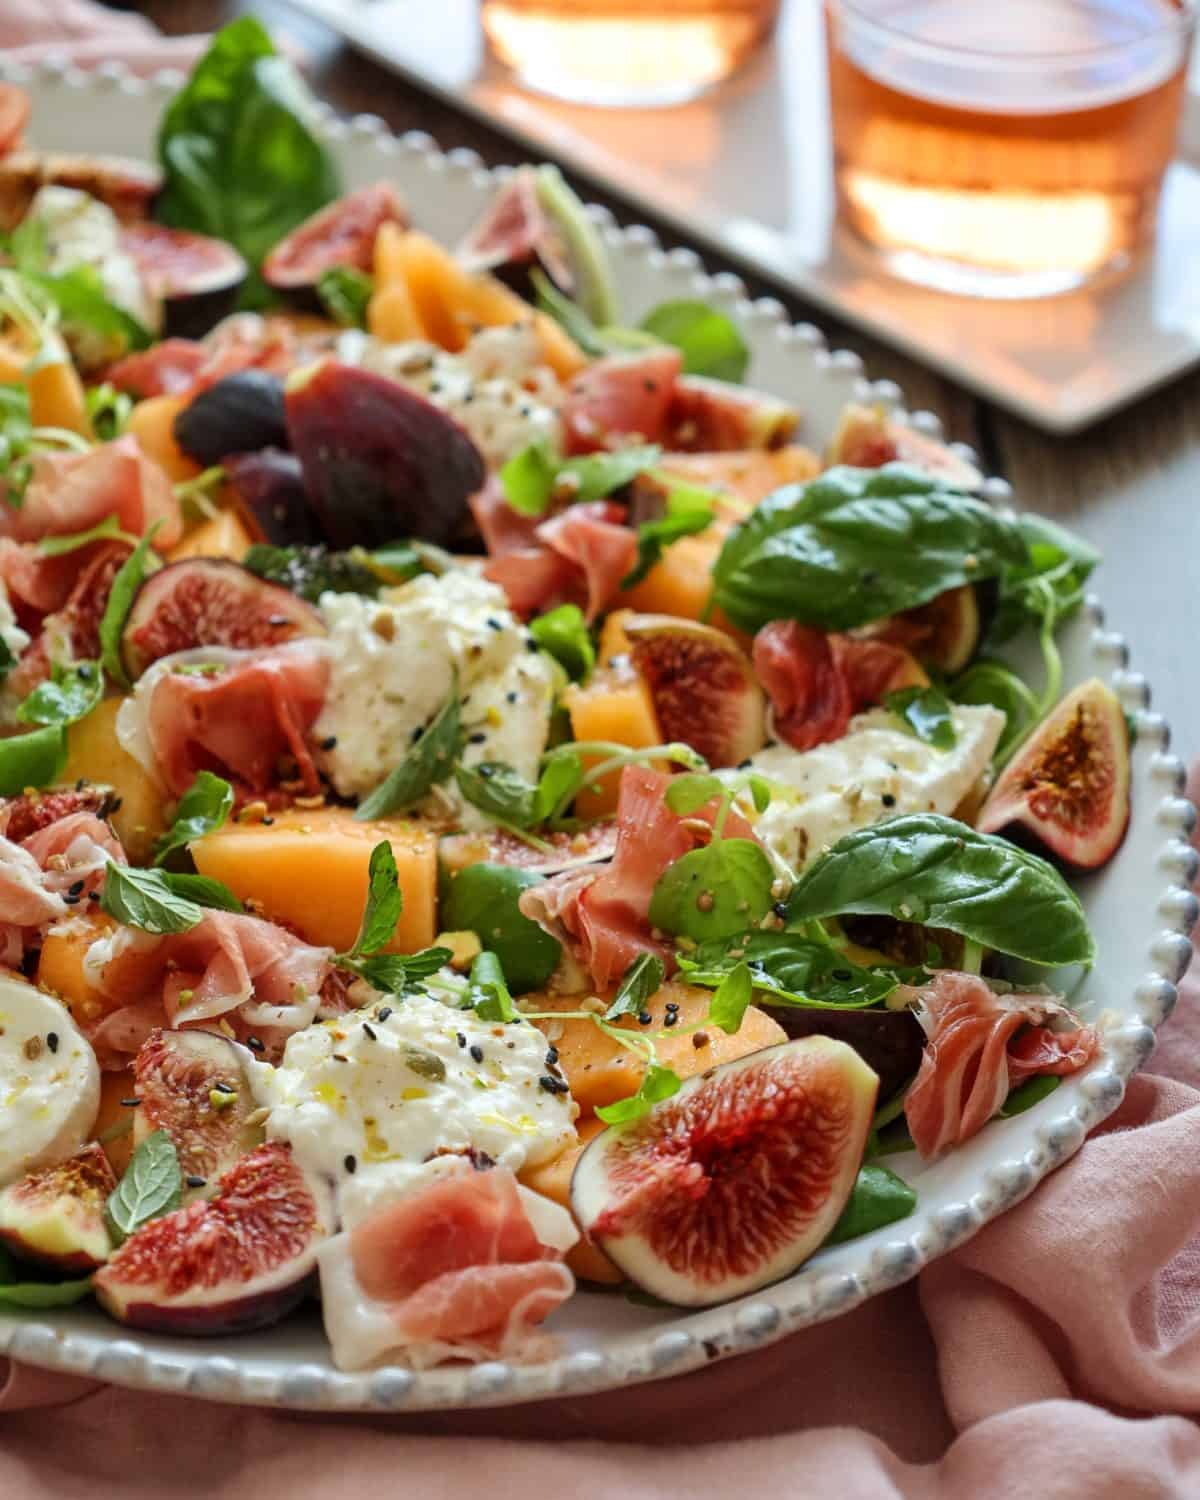 Summer Salad with Figs, Melon & Dukkah